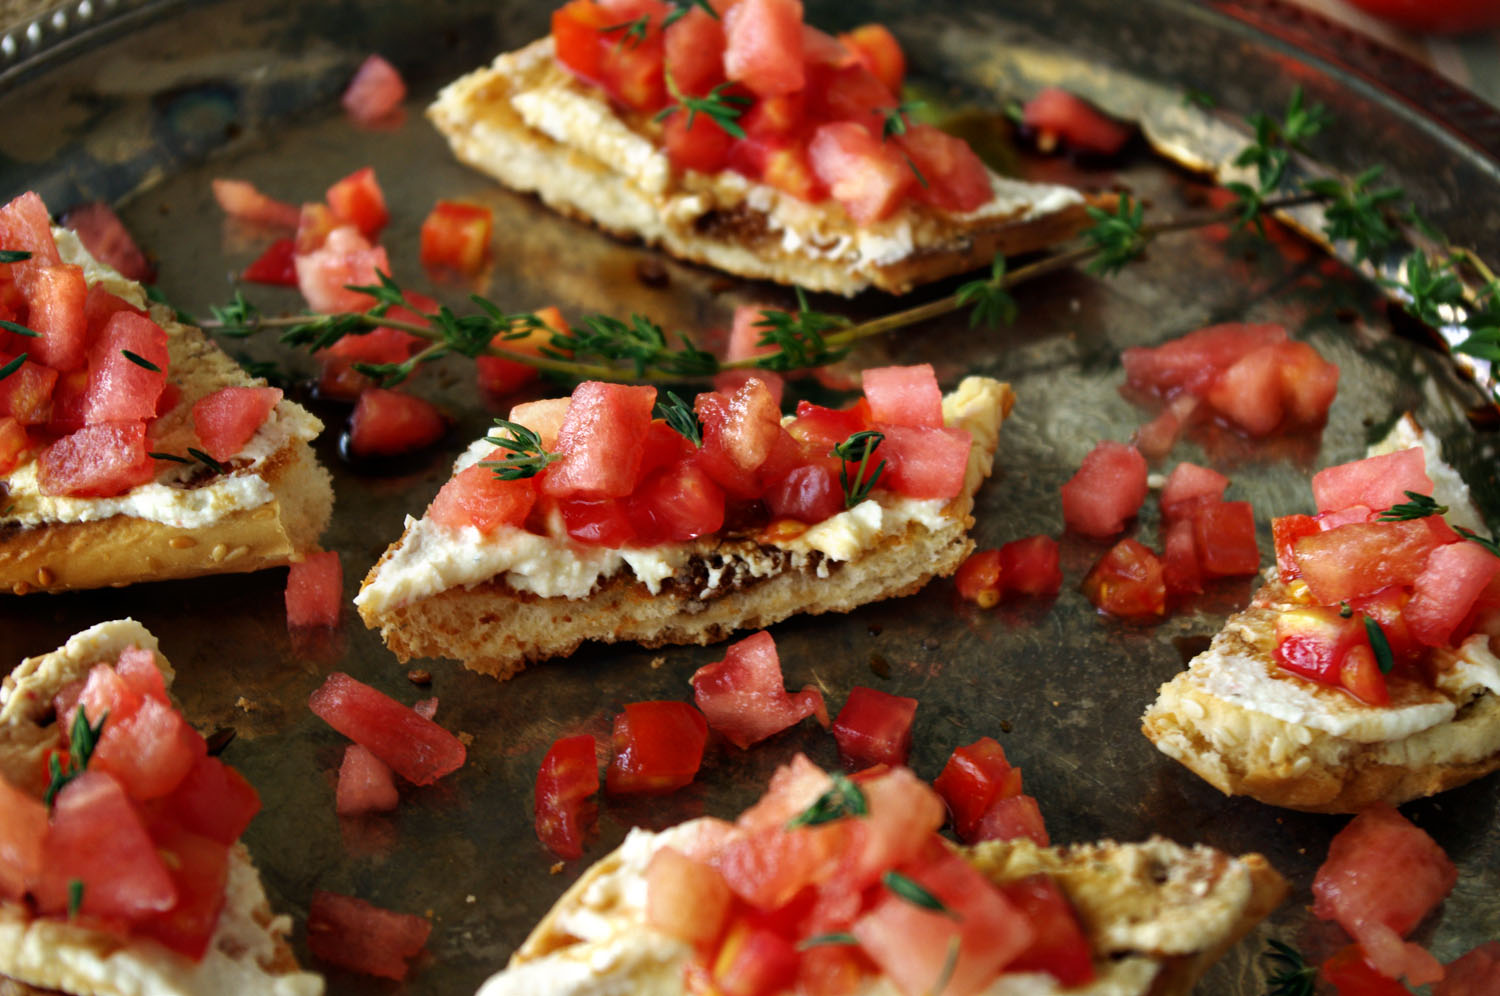 Jalapeno Watermelon Bruschetta